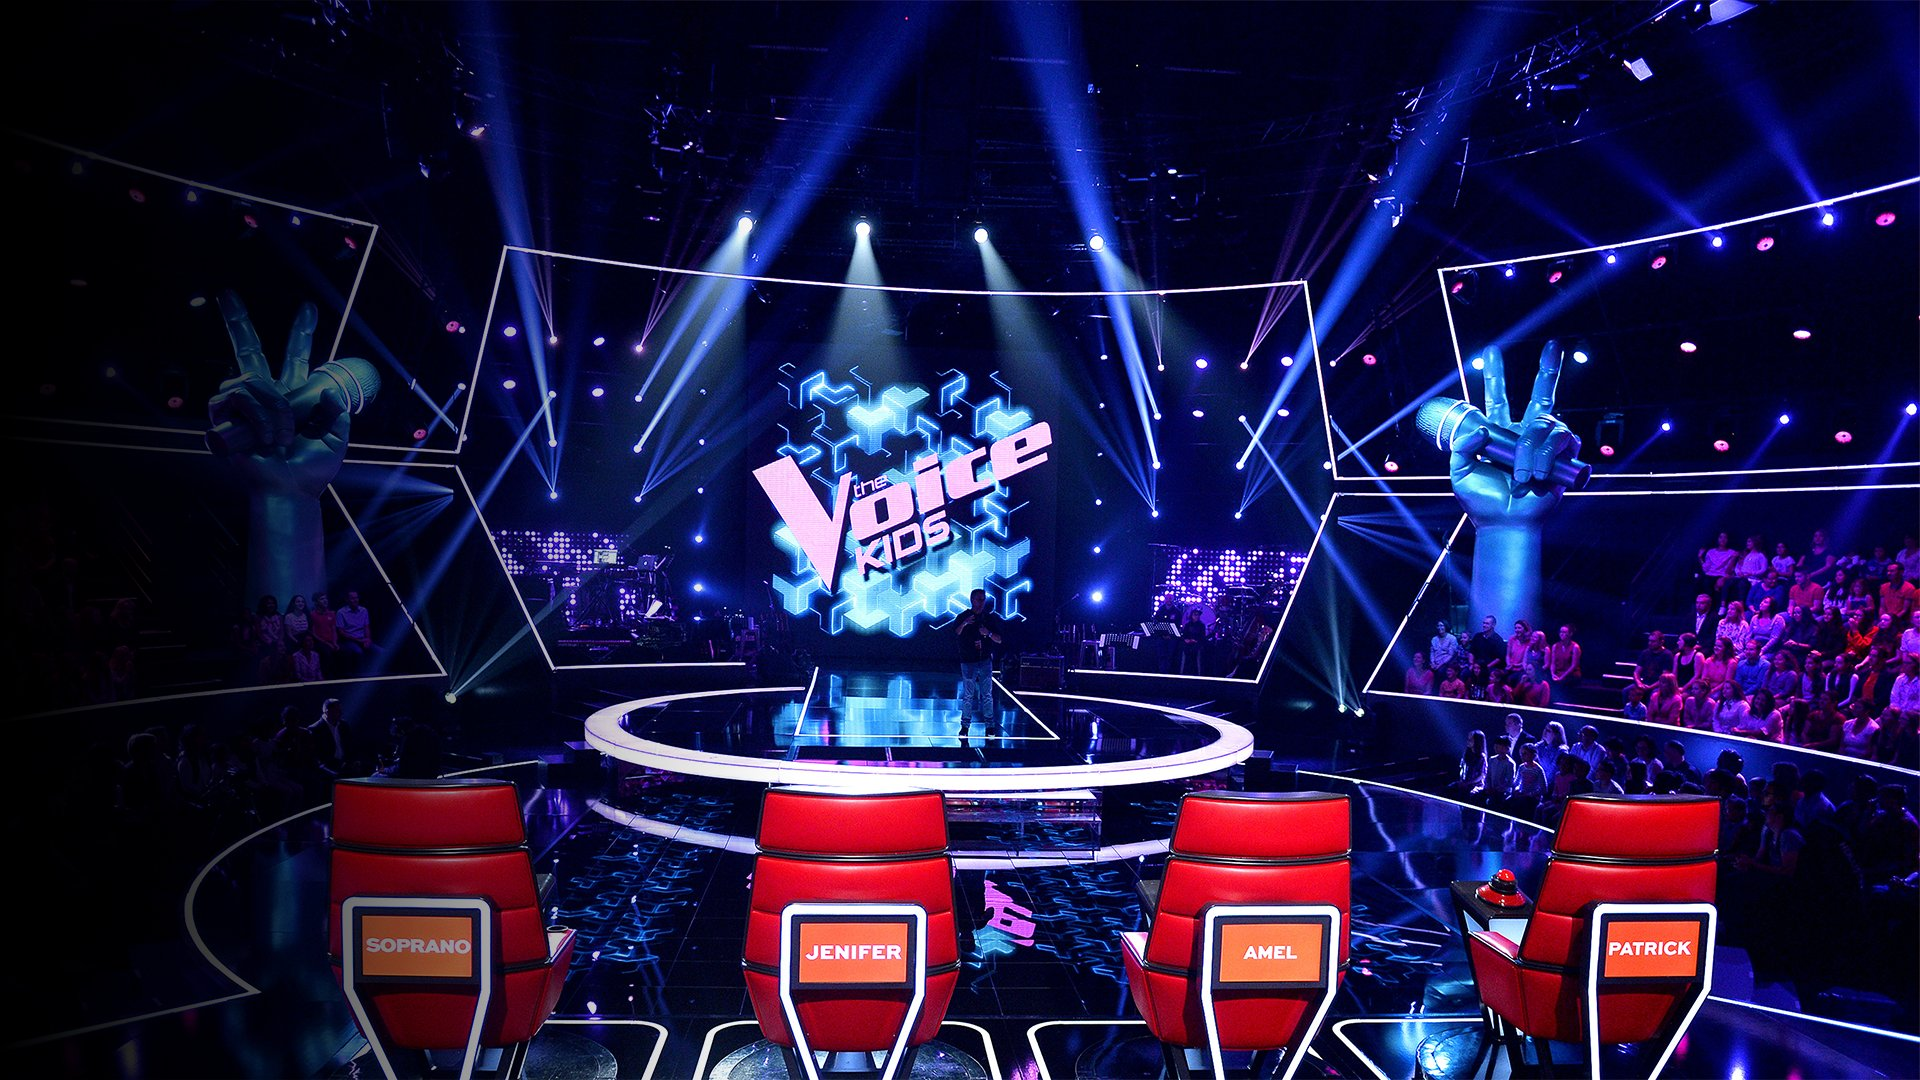 fond Florent Pagny « Rafale de vent » en direct pour la finale de The Voice 2019